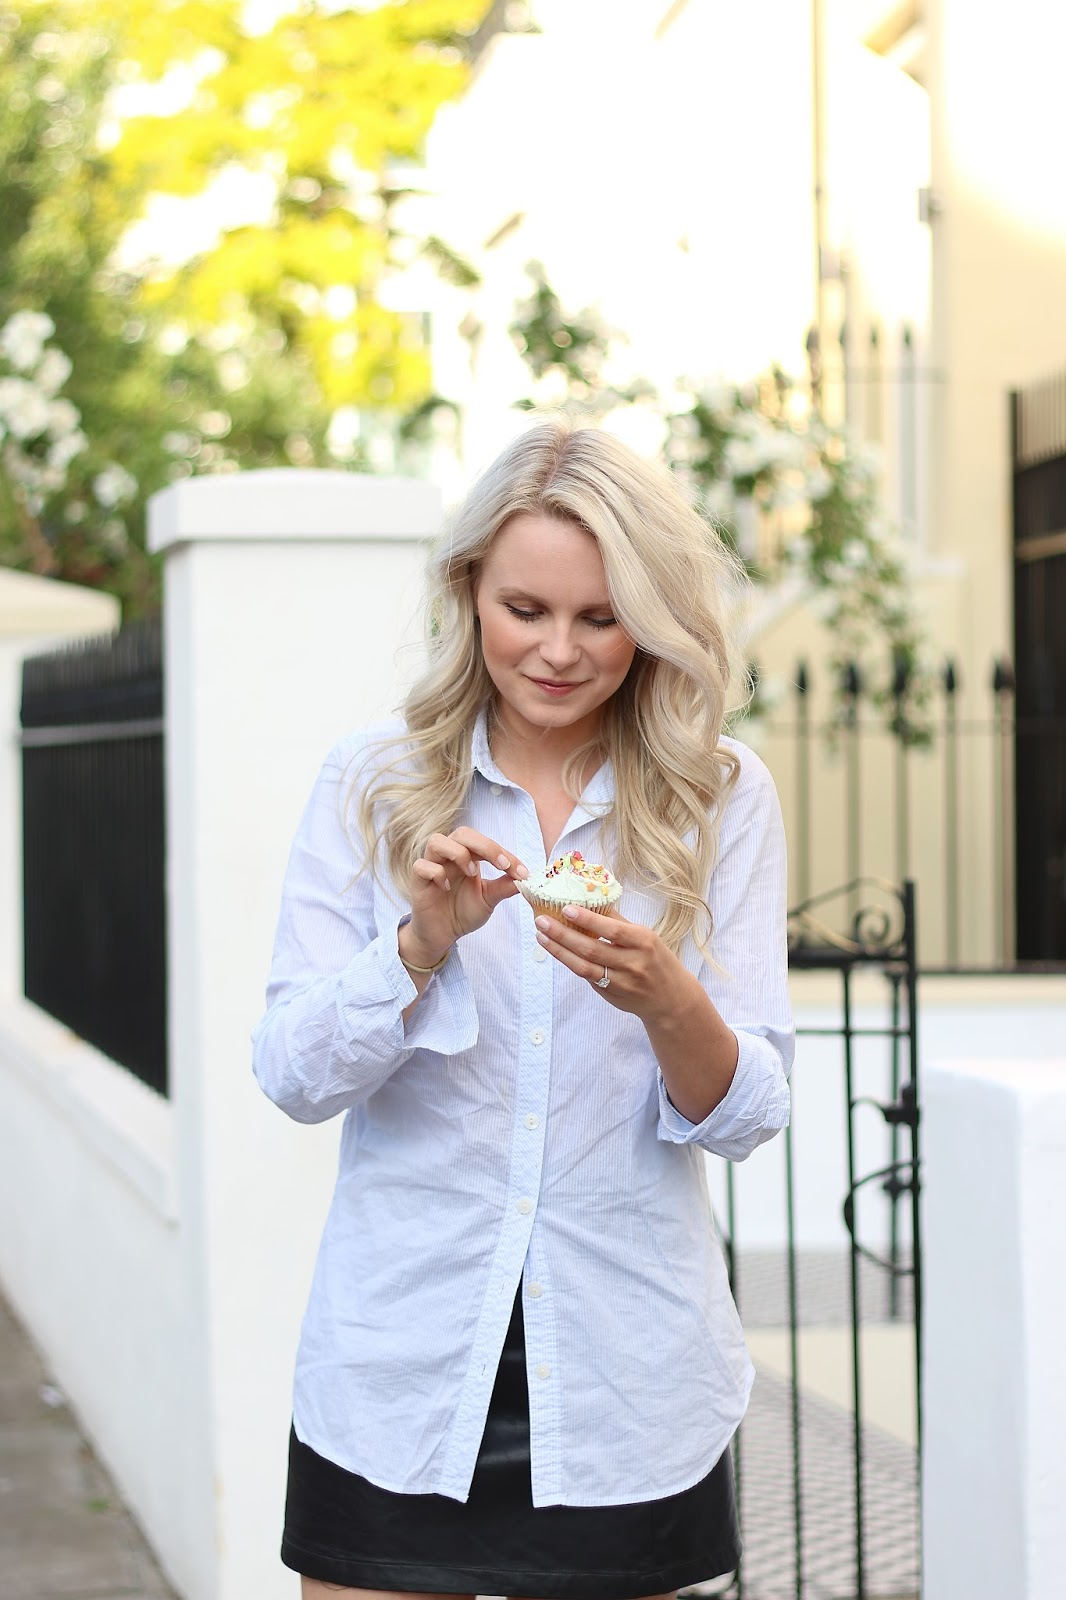 a girl wearing a blue button up shirt eats a vanilla cupcake on a sunny day in notting hill, london